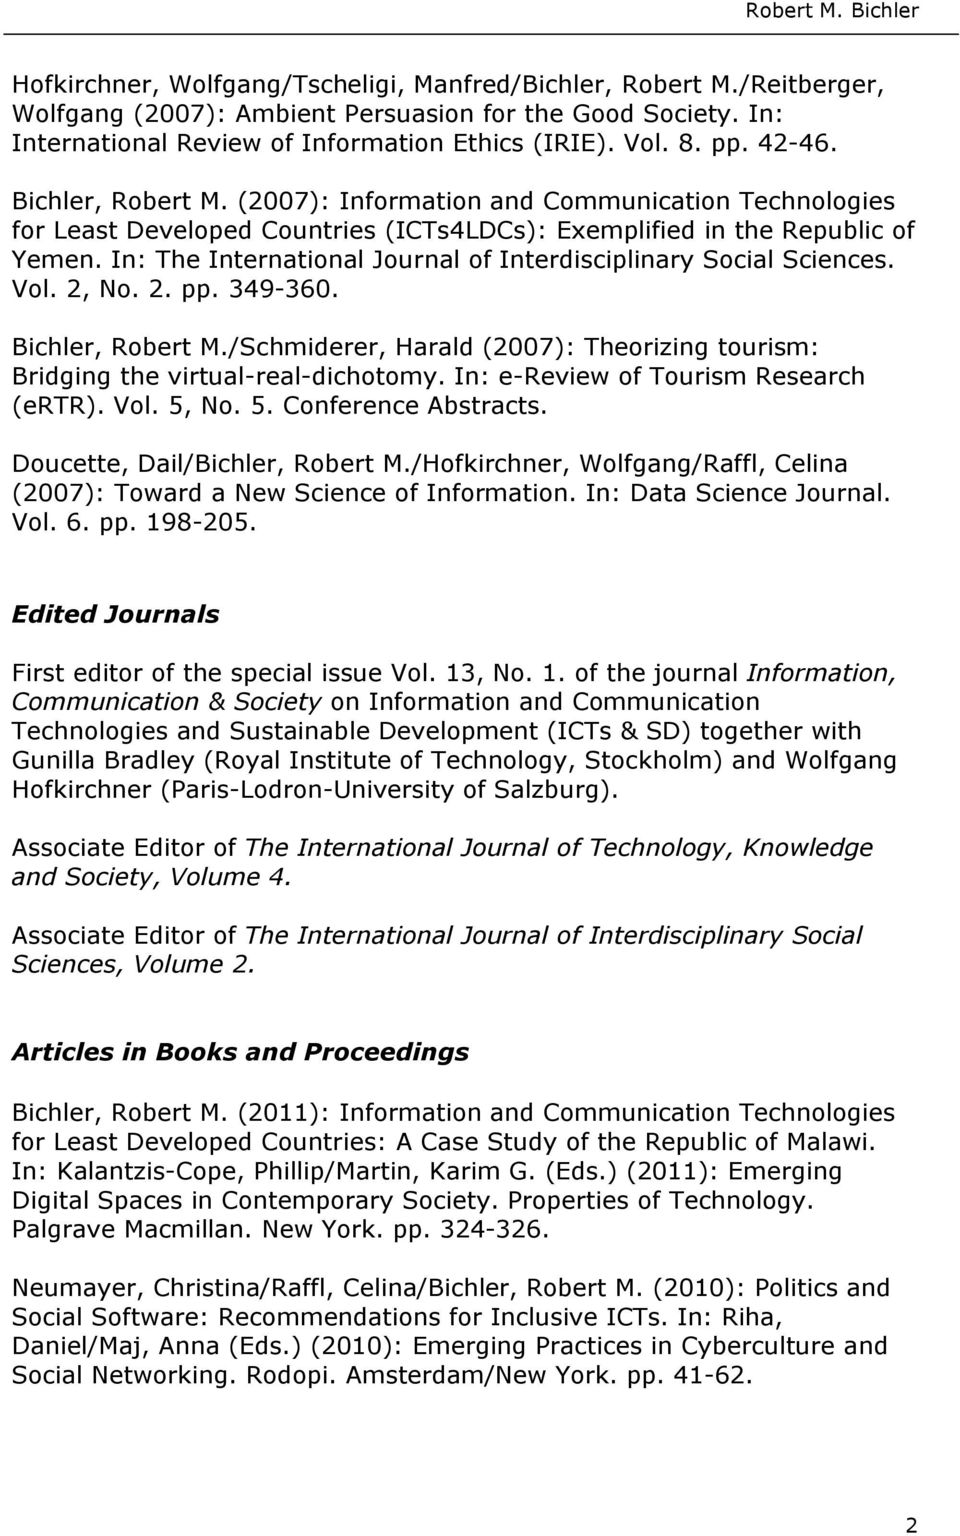 In: The International Journal of Interdisciplinary Social Sciences. Vol. 2, No. 2. pp. 349-360. Bichler, Robert M./Schmiderer, Harald (2007): Theorizing tourism: Bridging the virtual-real-dichotomy.